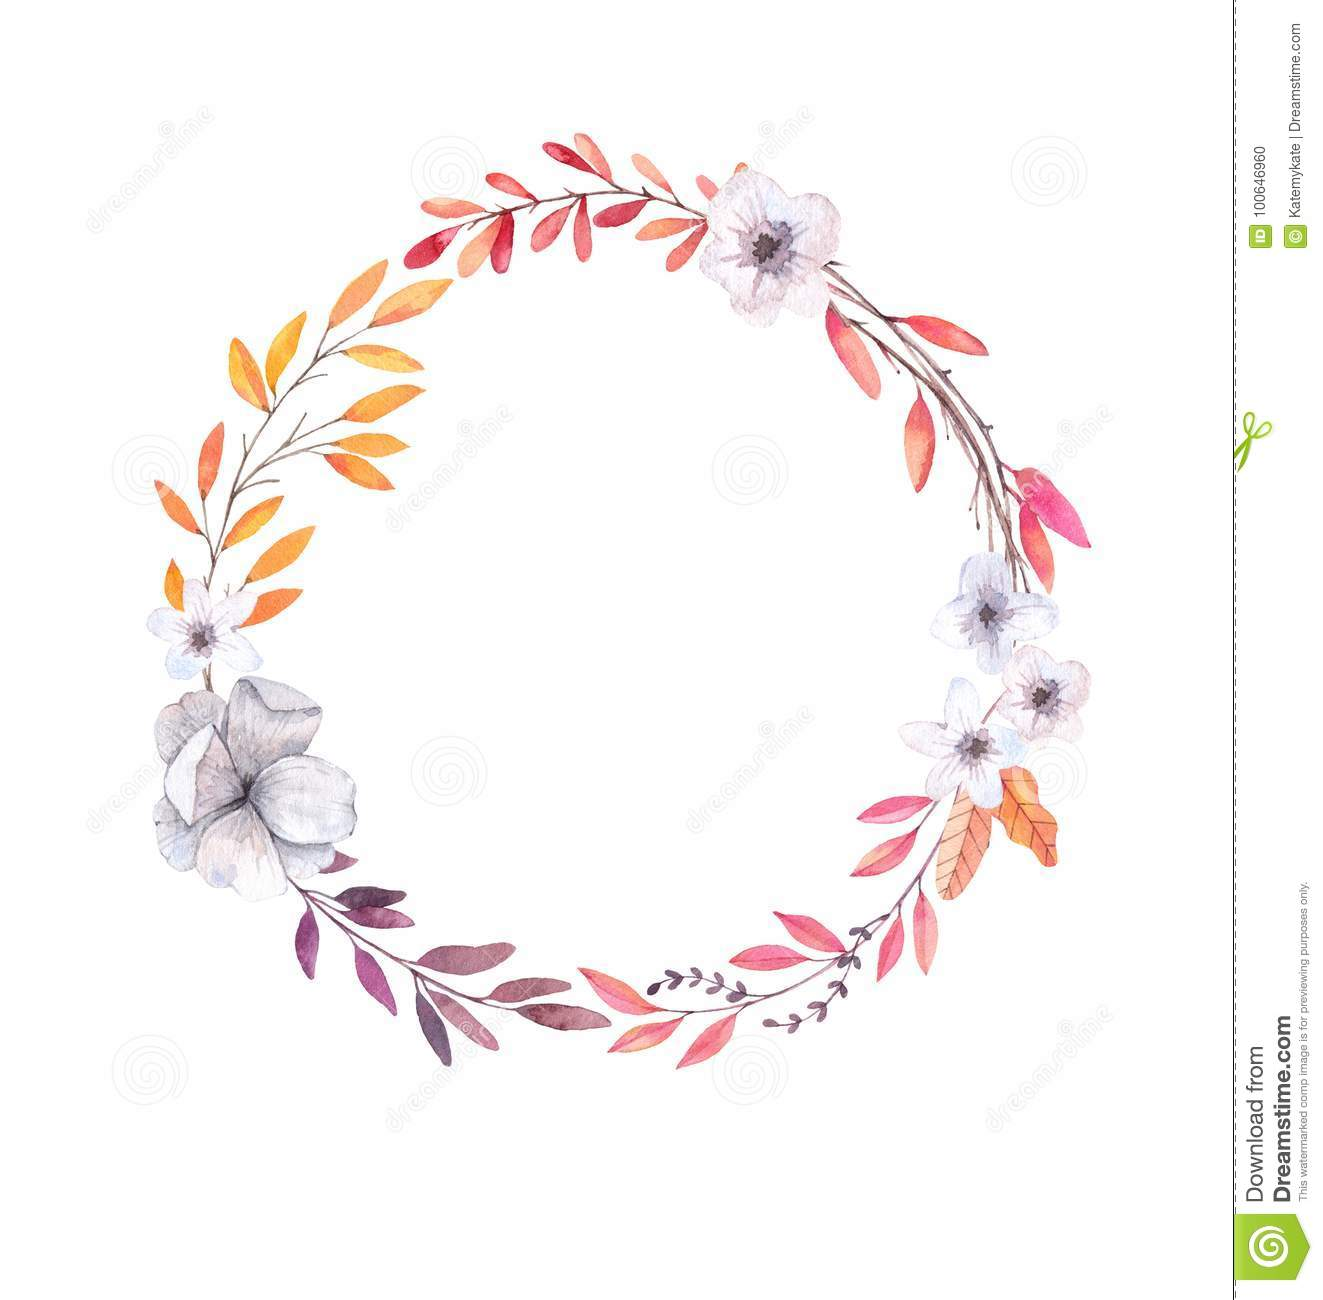 Hand drawn watercolor illustration. Autumn Wreath. Fall leaves.